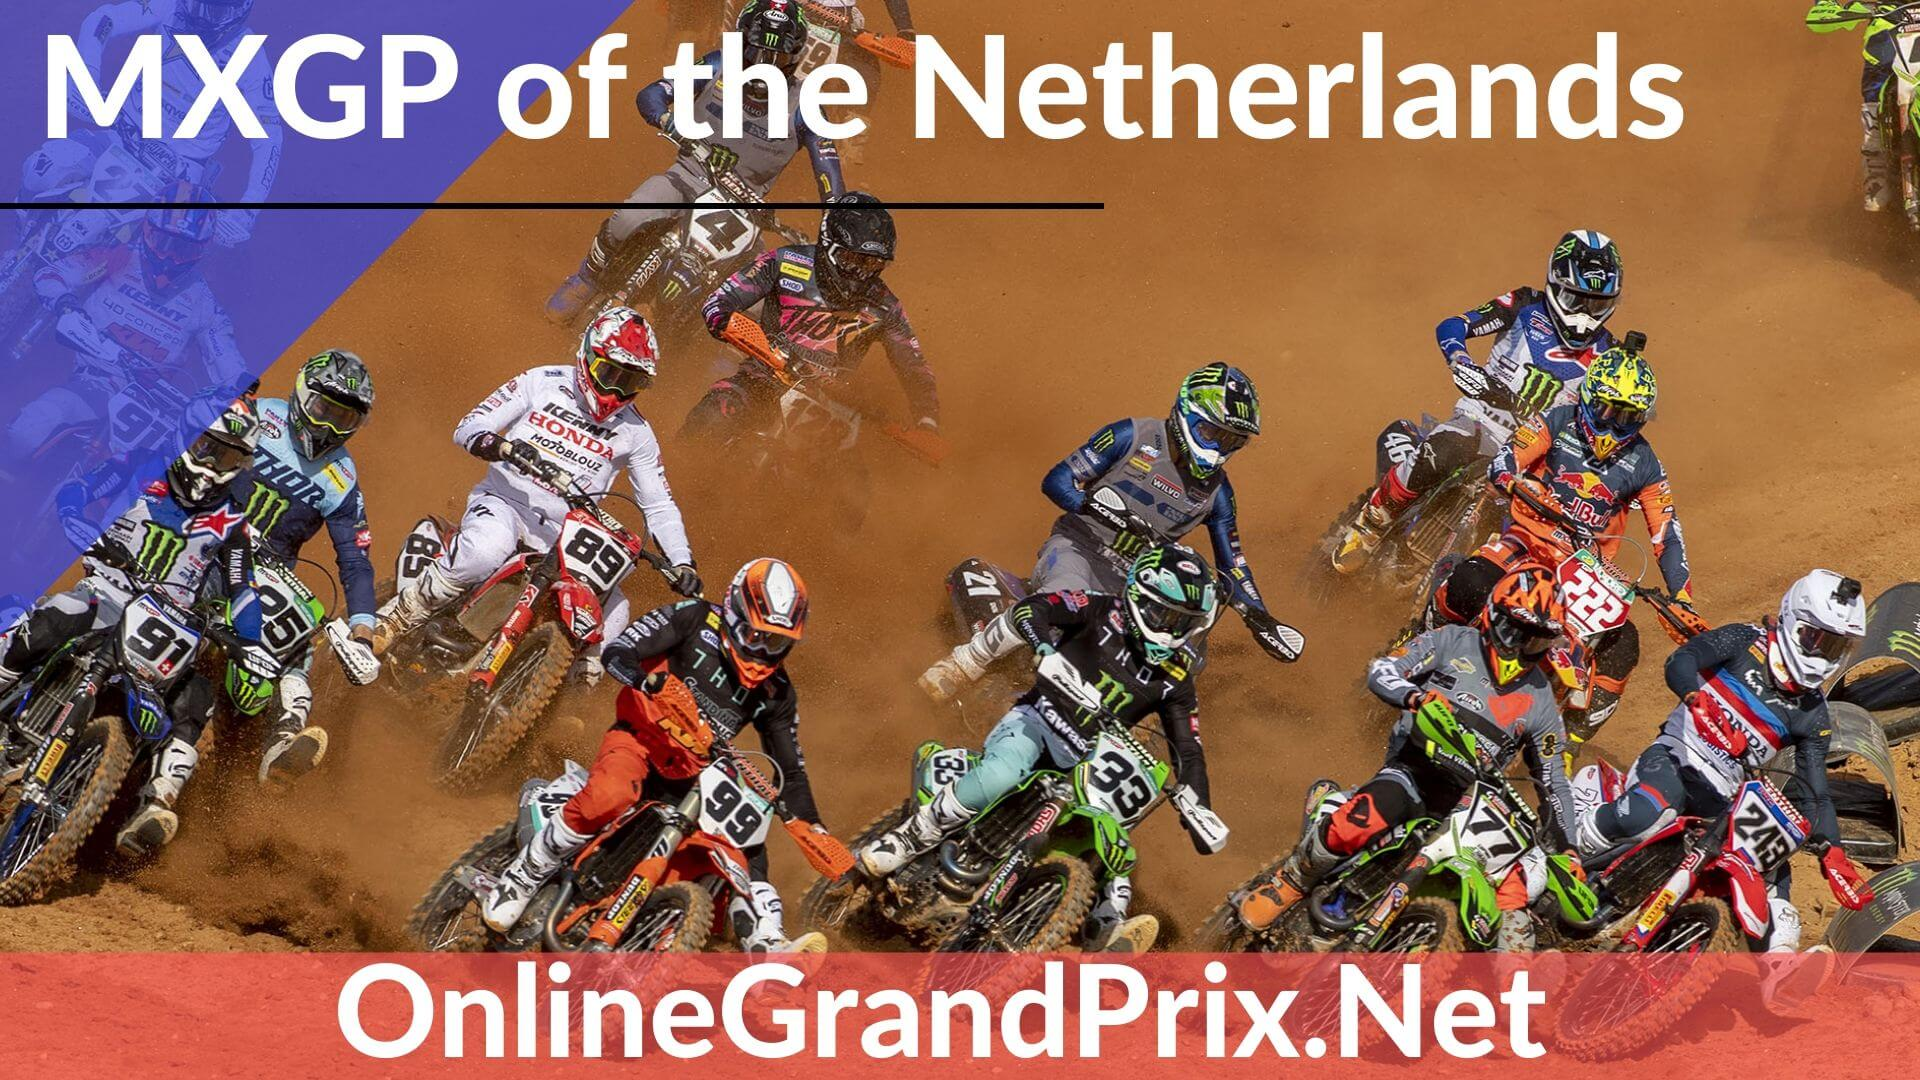 Netherlands MXGP Live Stream 2020 | FIM MotoCross WC